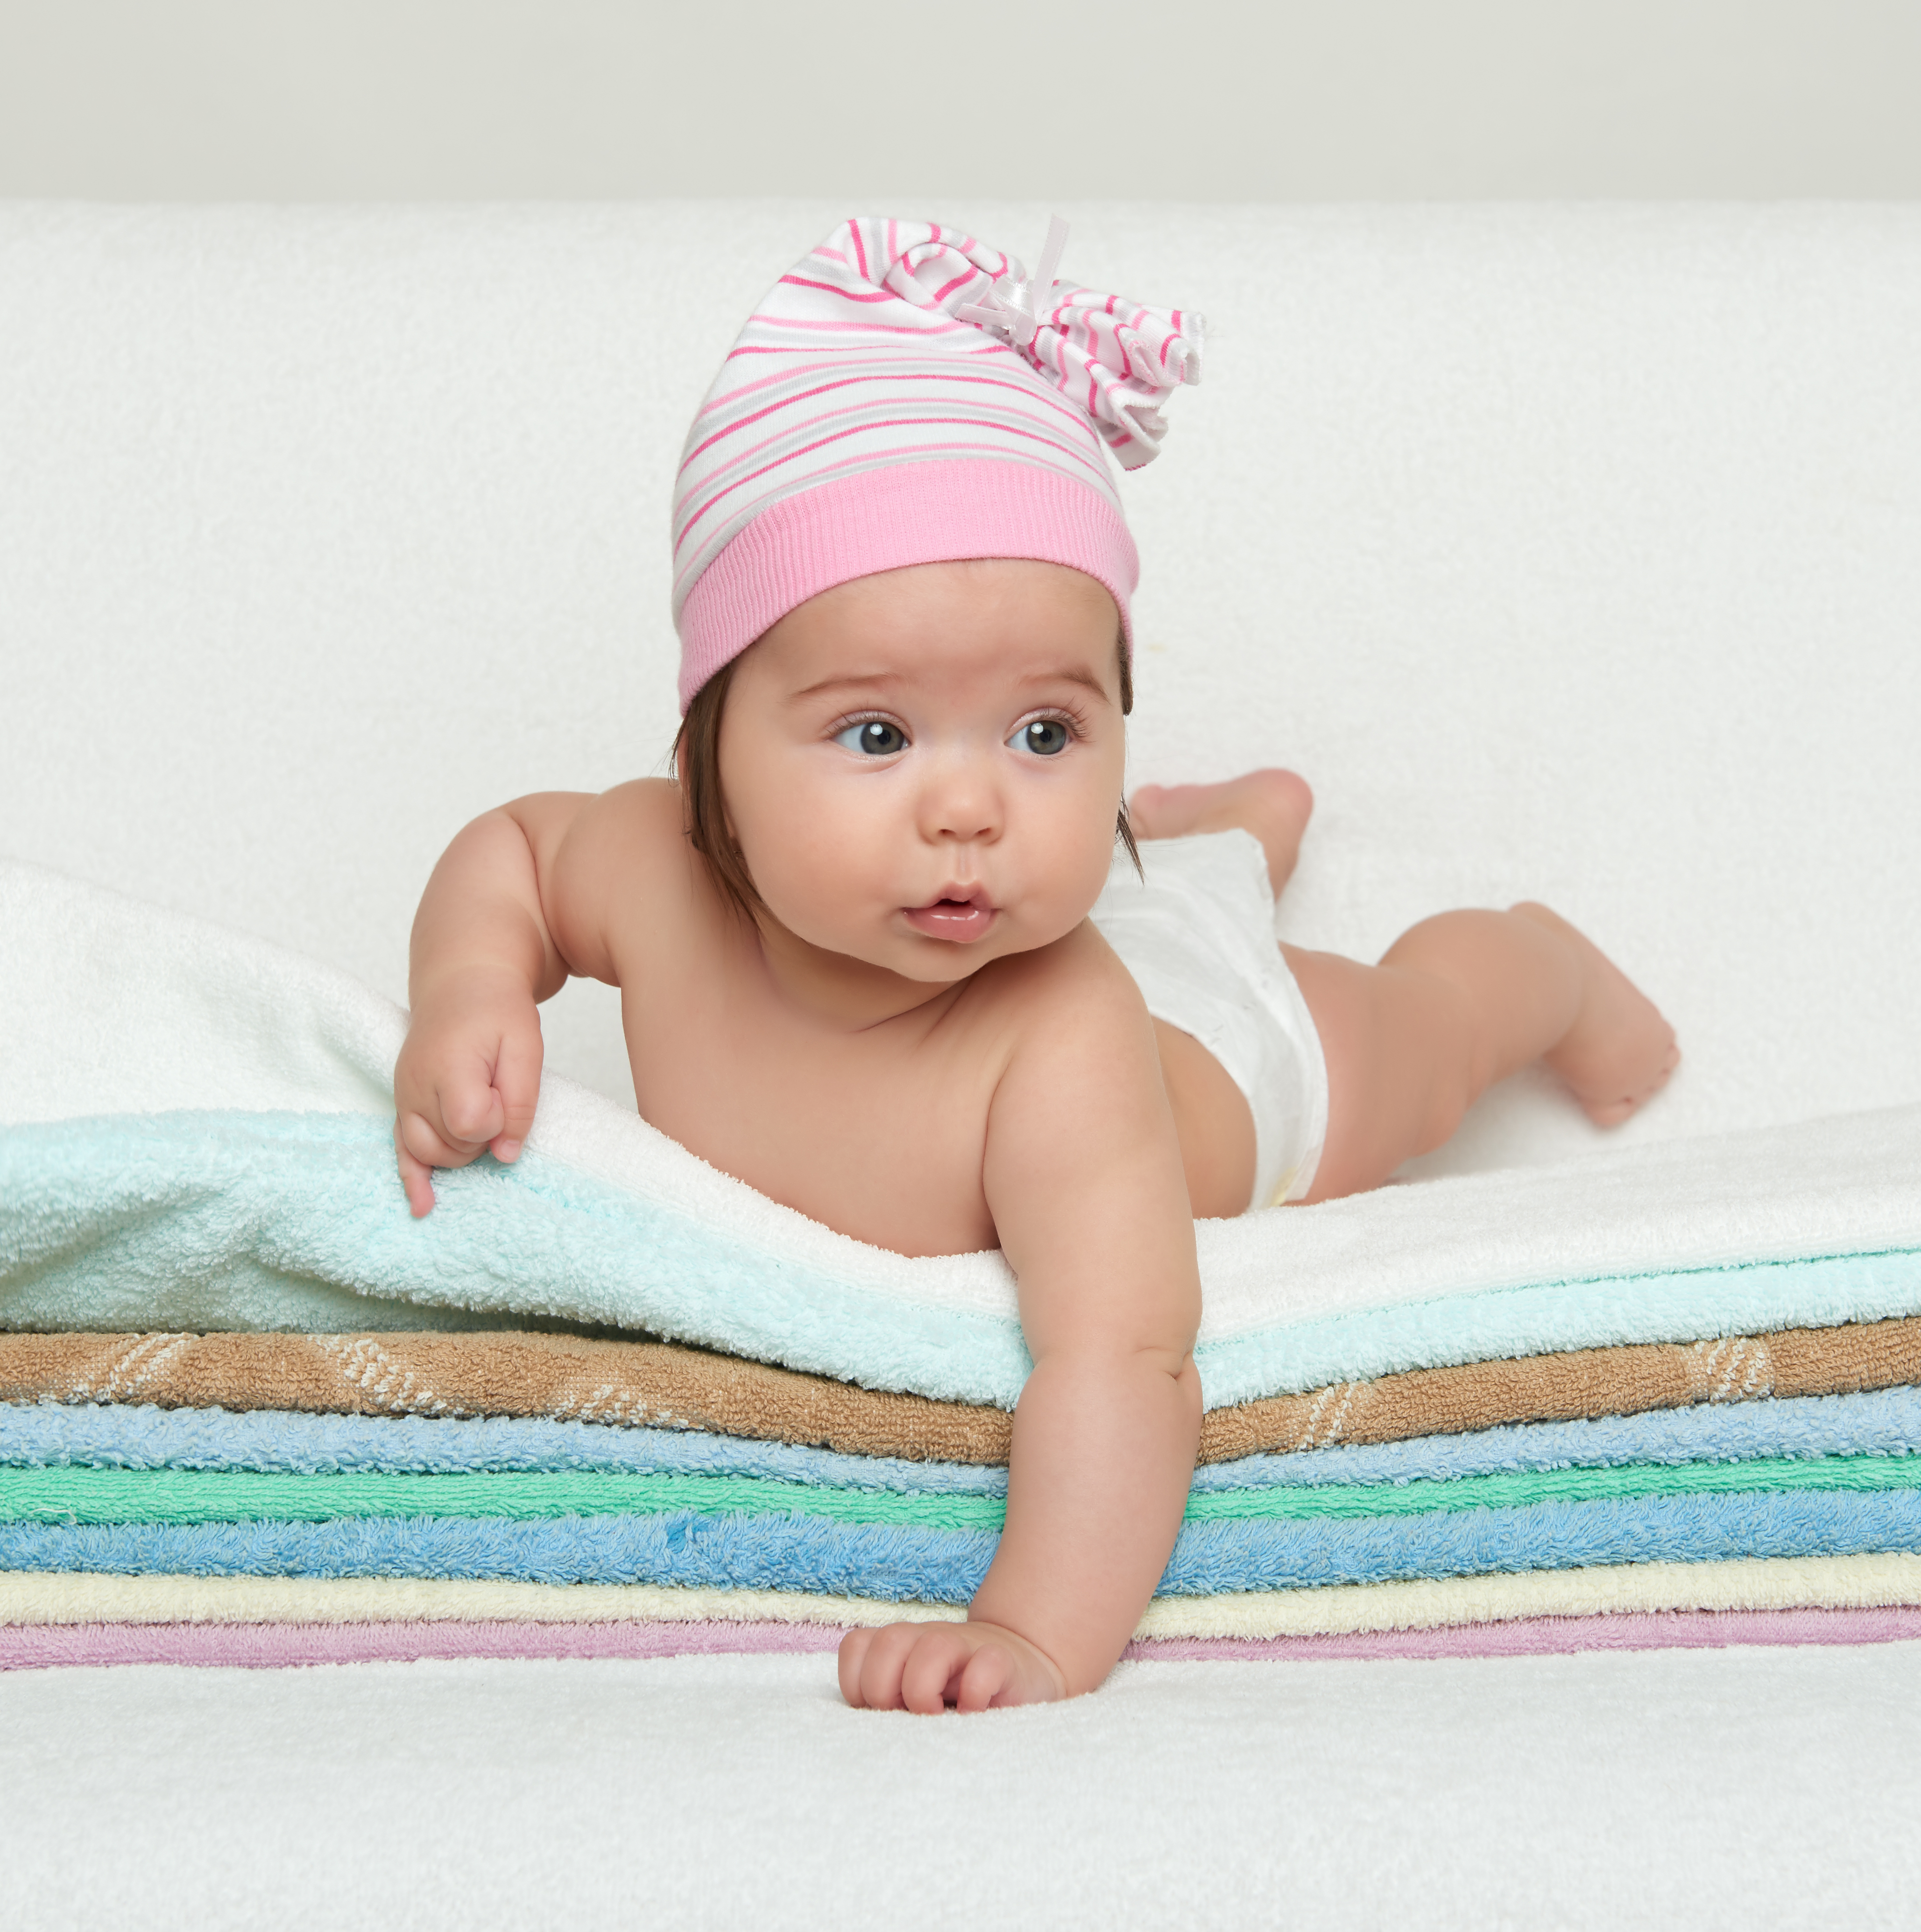 Save On Bulk Diaper Orders At Central Better Wear